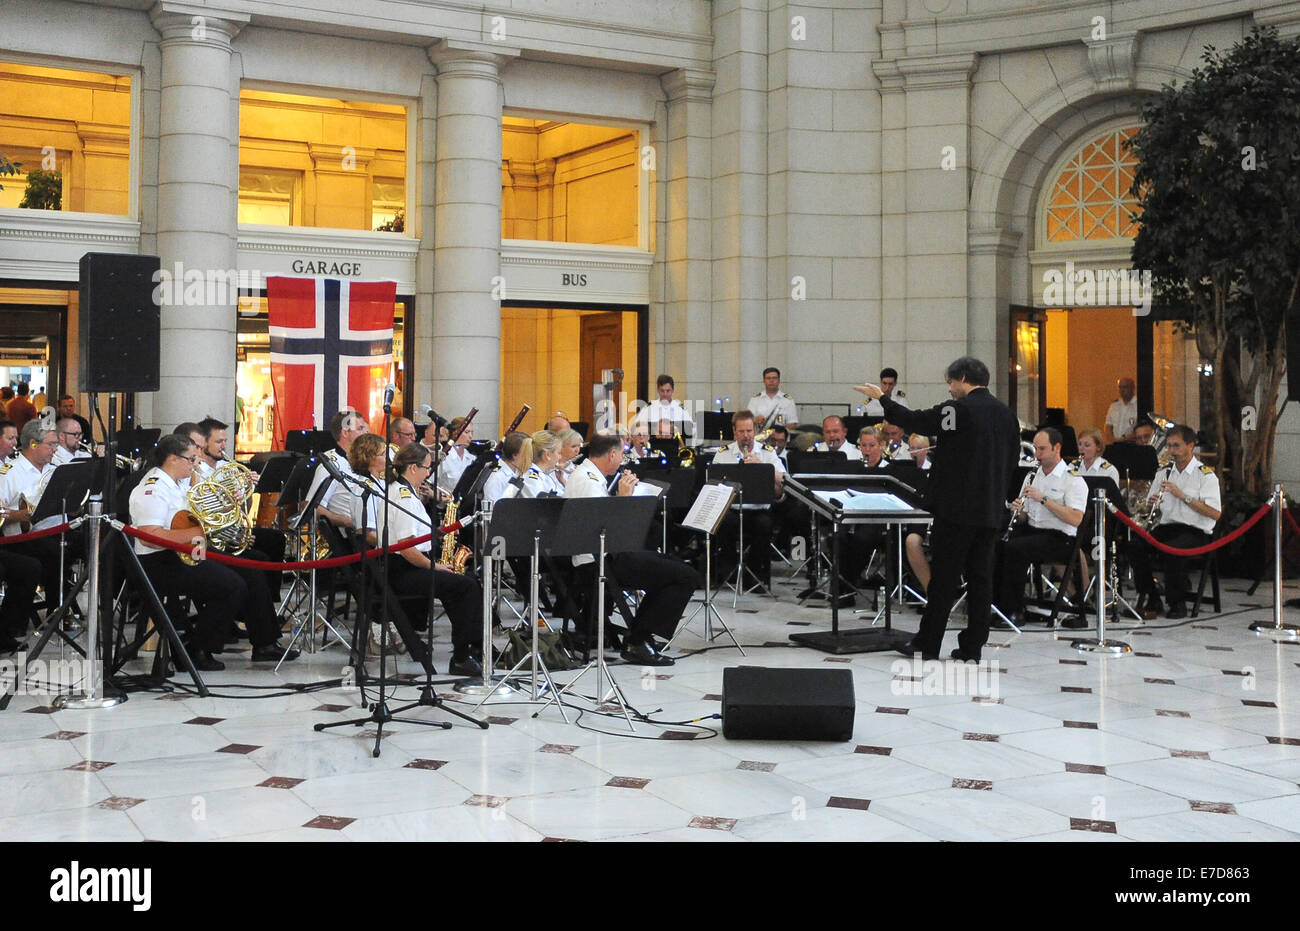 Washington, DC, USA. 12th Sep, 2014. 20140912: The Royal Norwegian Navy Band performs a free concert inside Union Stock Photo